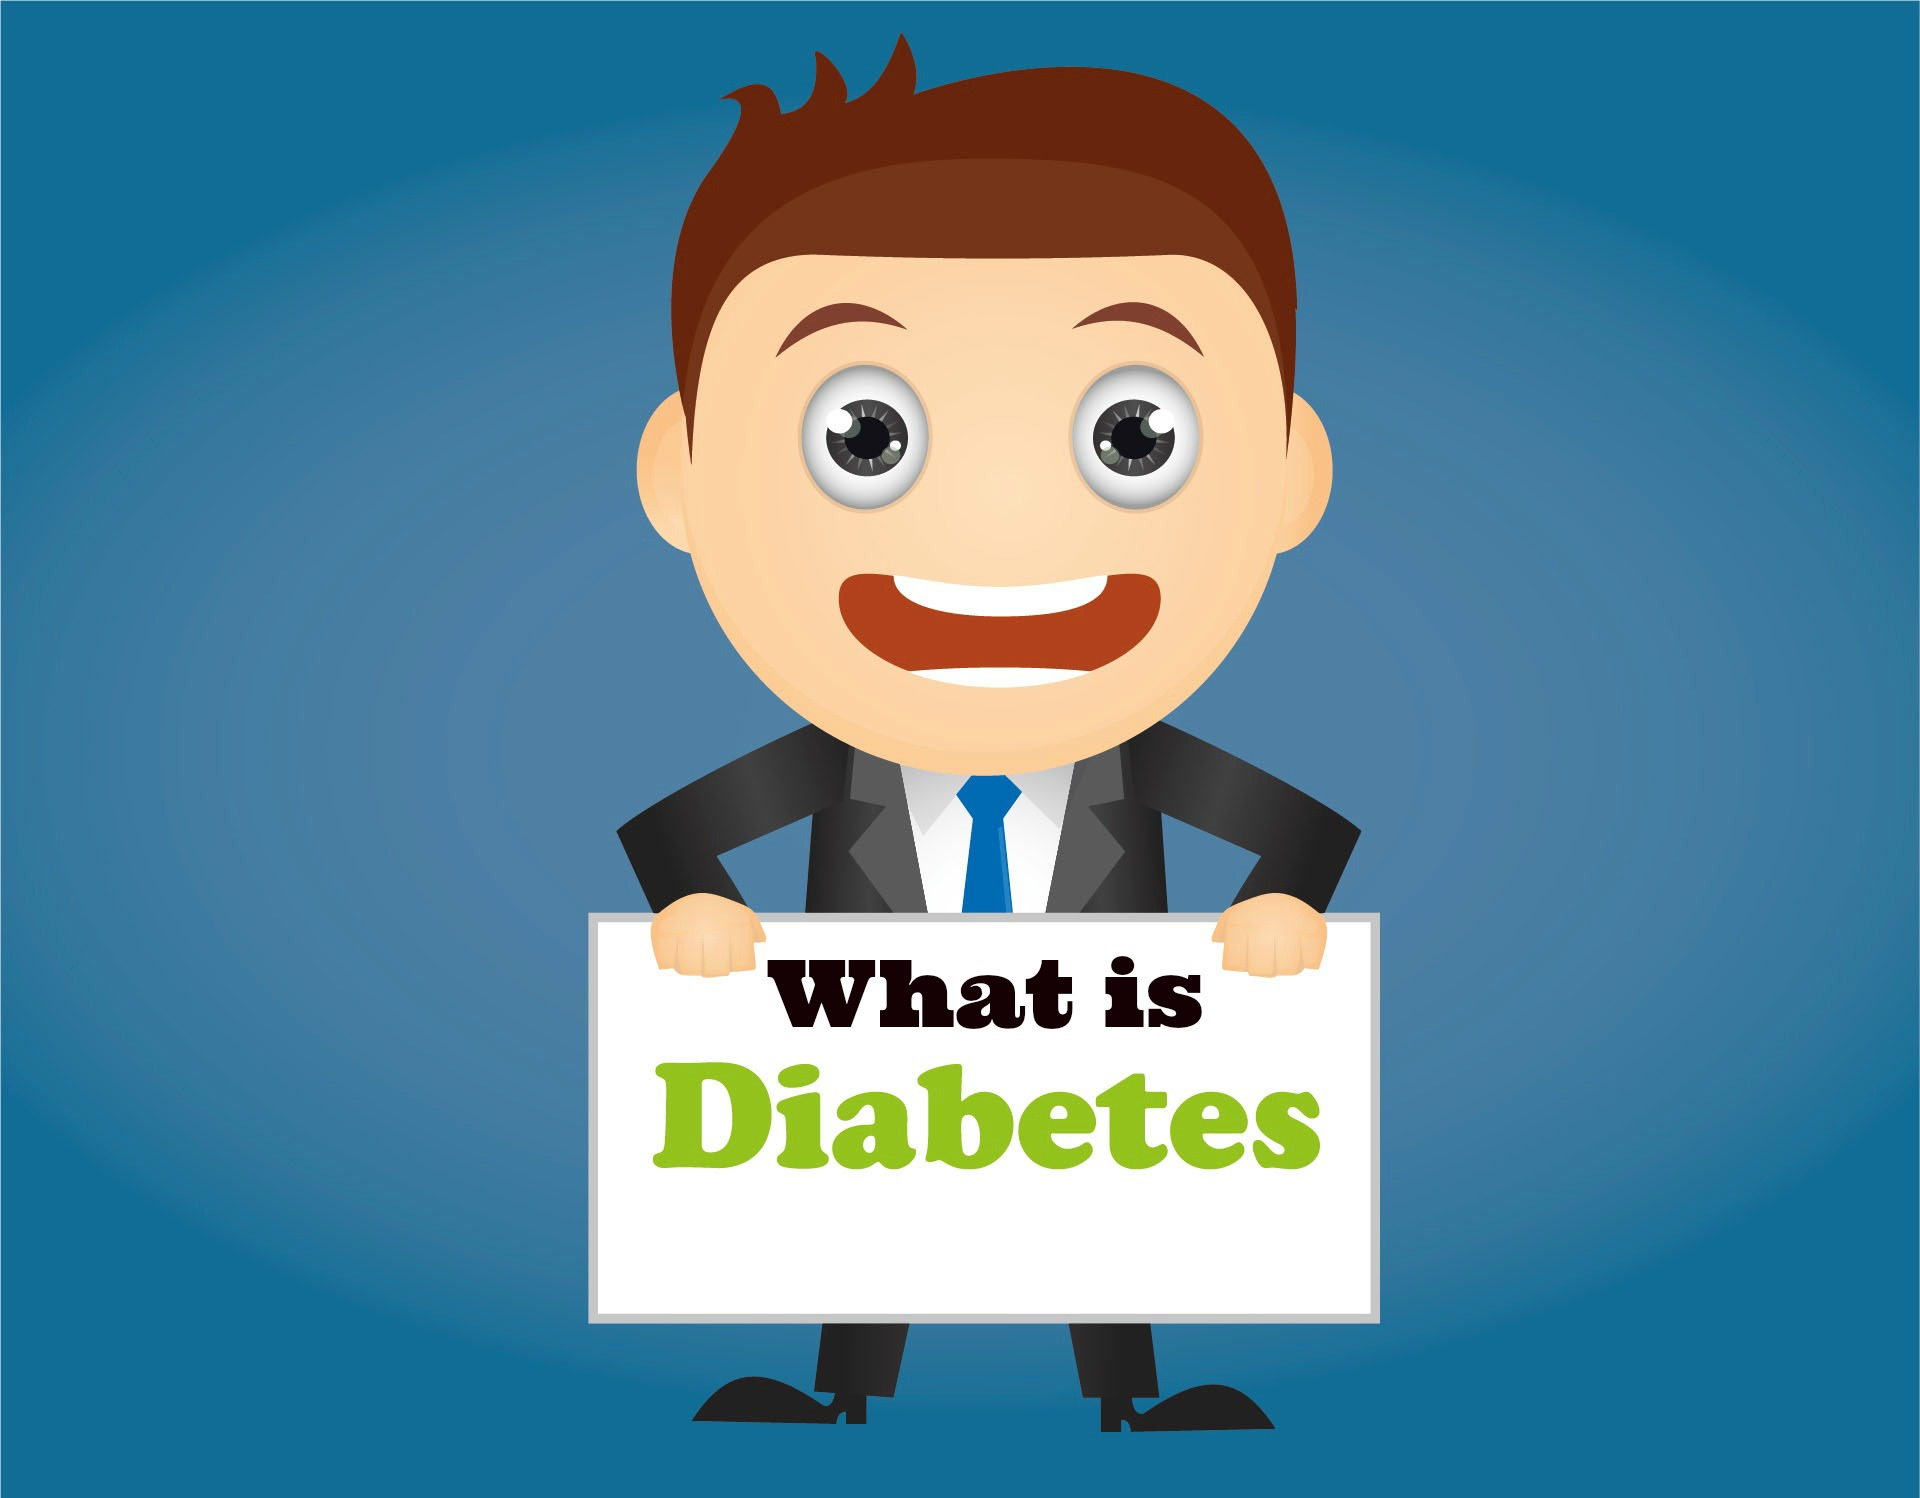 diabetes What is-1270346